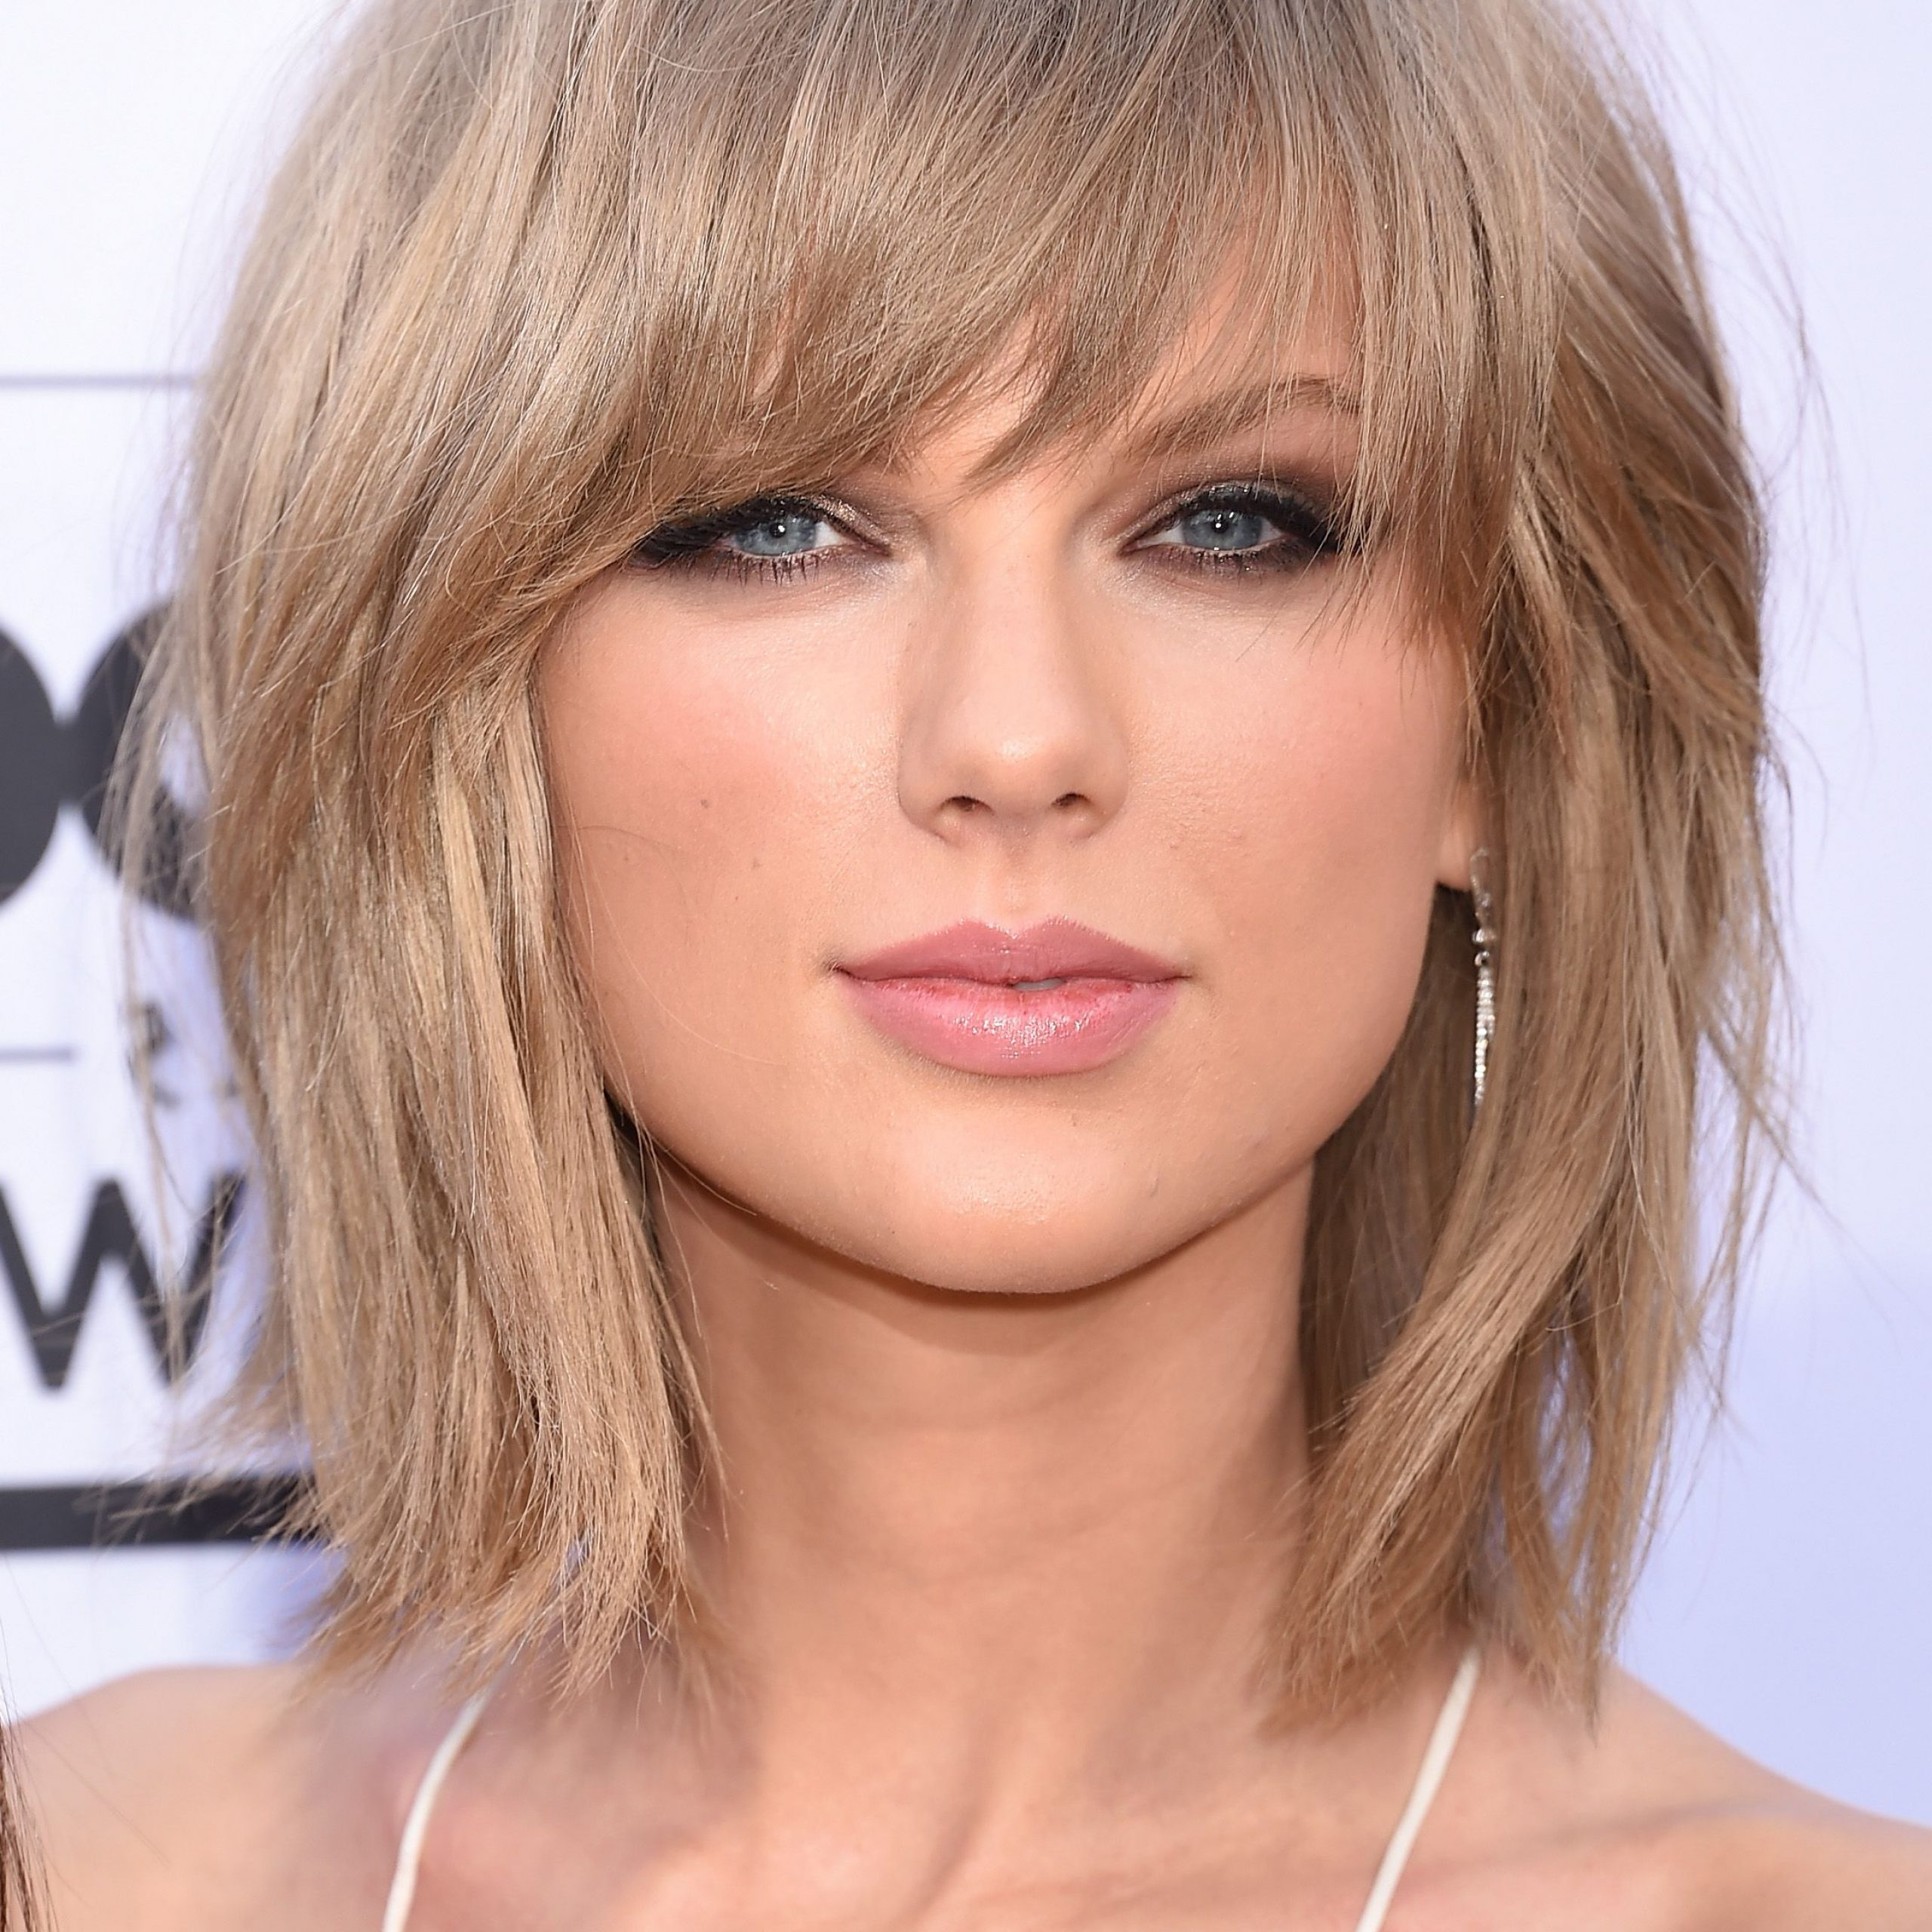 32 Celebrity Shag Haircut Ideas – Shag Hairstyle Long And Short With Fashionable Shaggy Haircuts With Uneven Bangs (View 2 of 20)